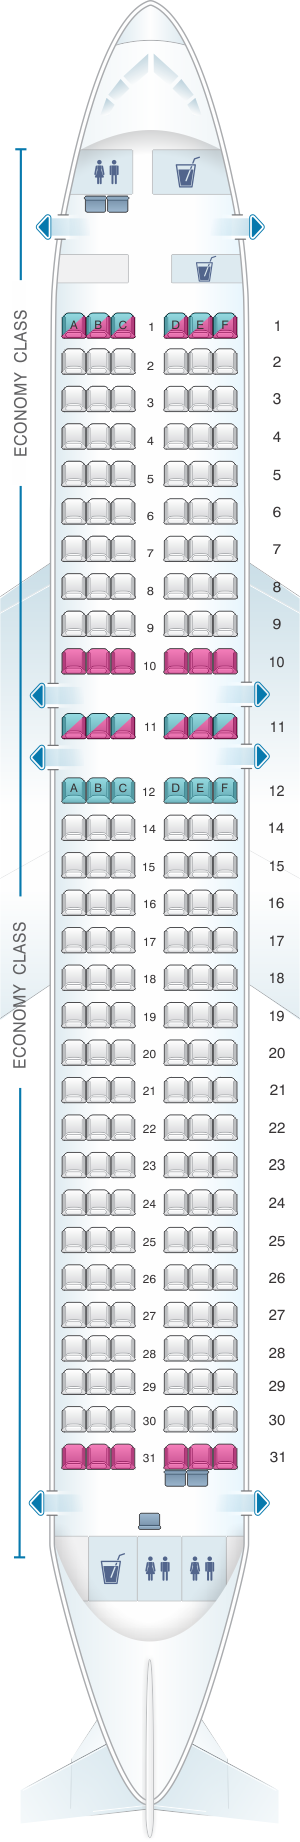 Seat map for Vueling A320 Neo